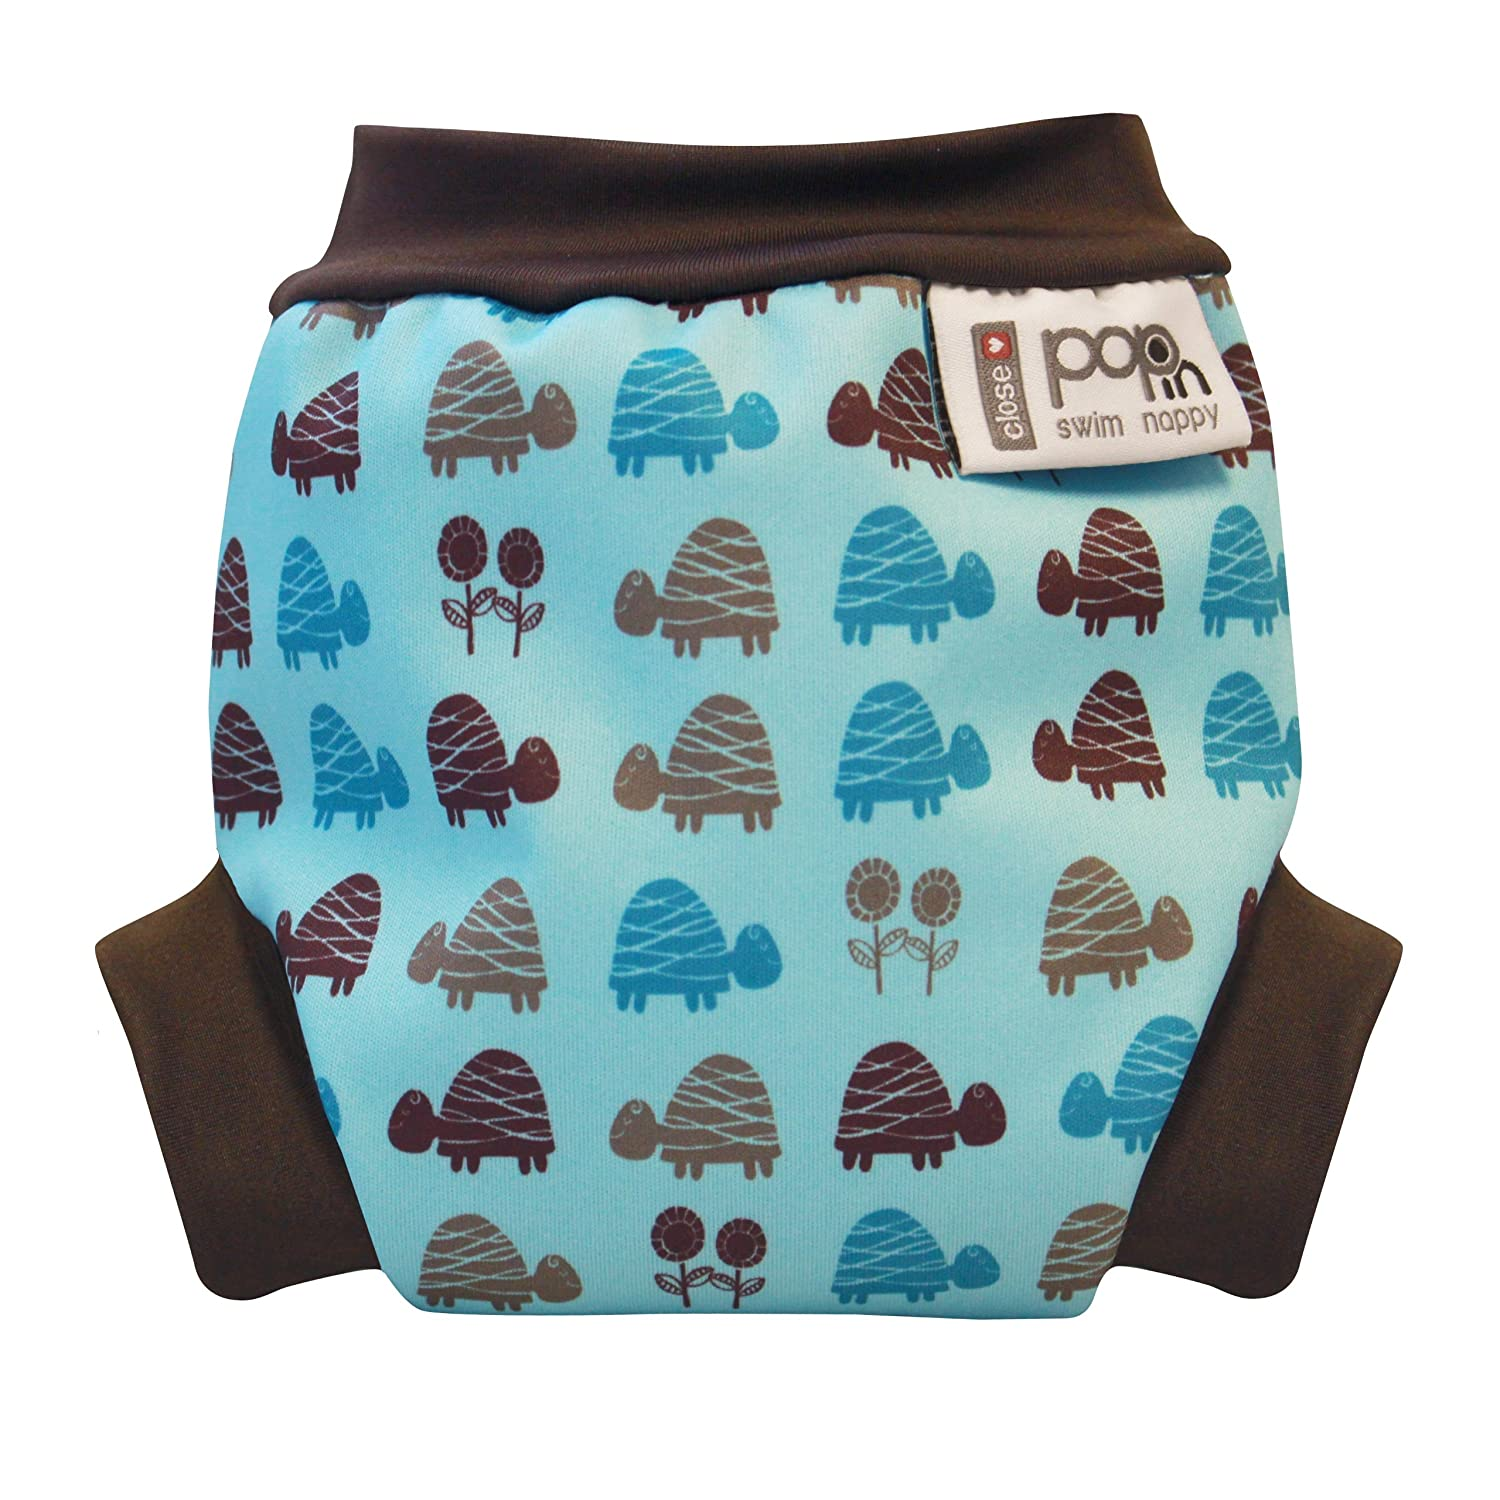 Cerrar Pop-in - Custom-panal del bebe, tamano S (3 kg o mas), ¿por que las tortugas, color: azul Close Baby Carrier 545635